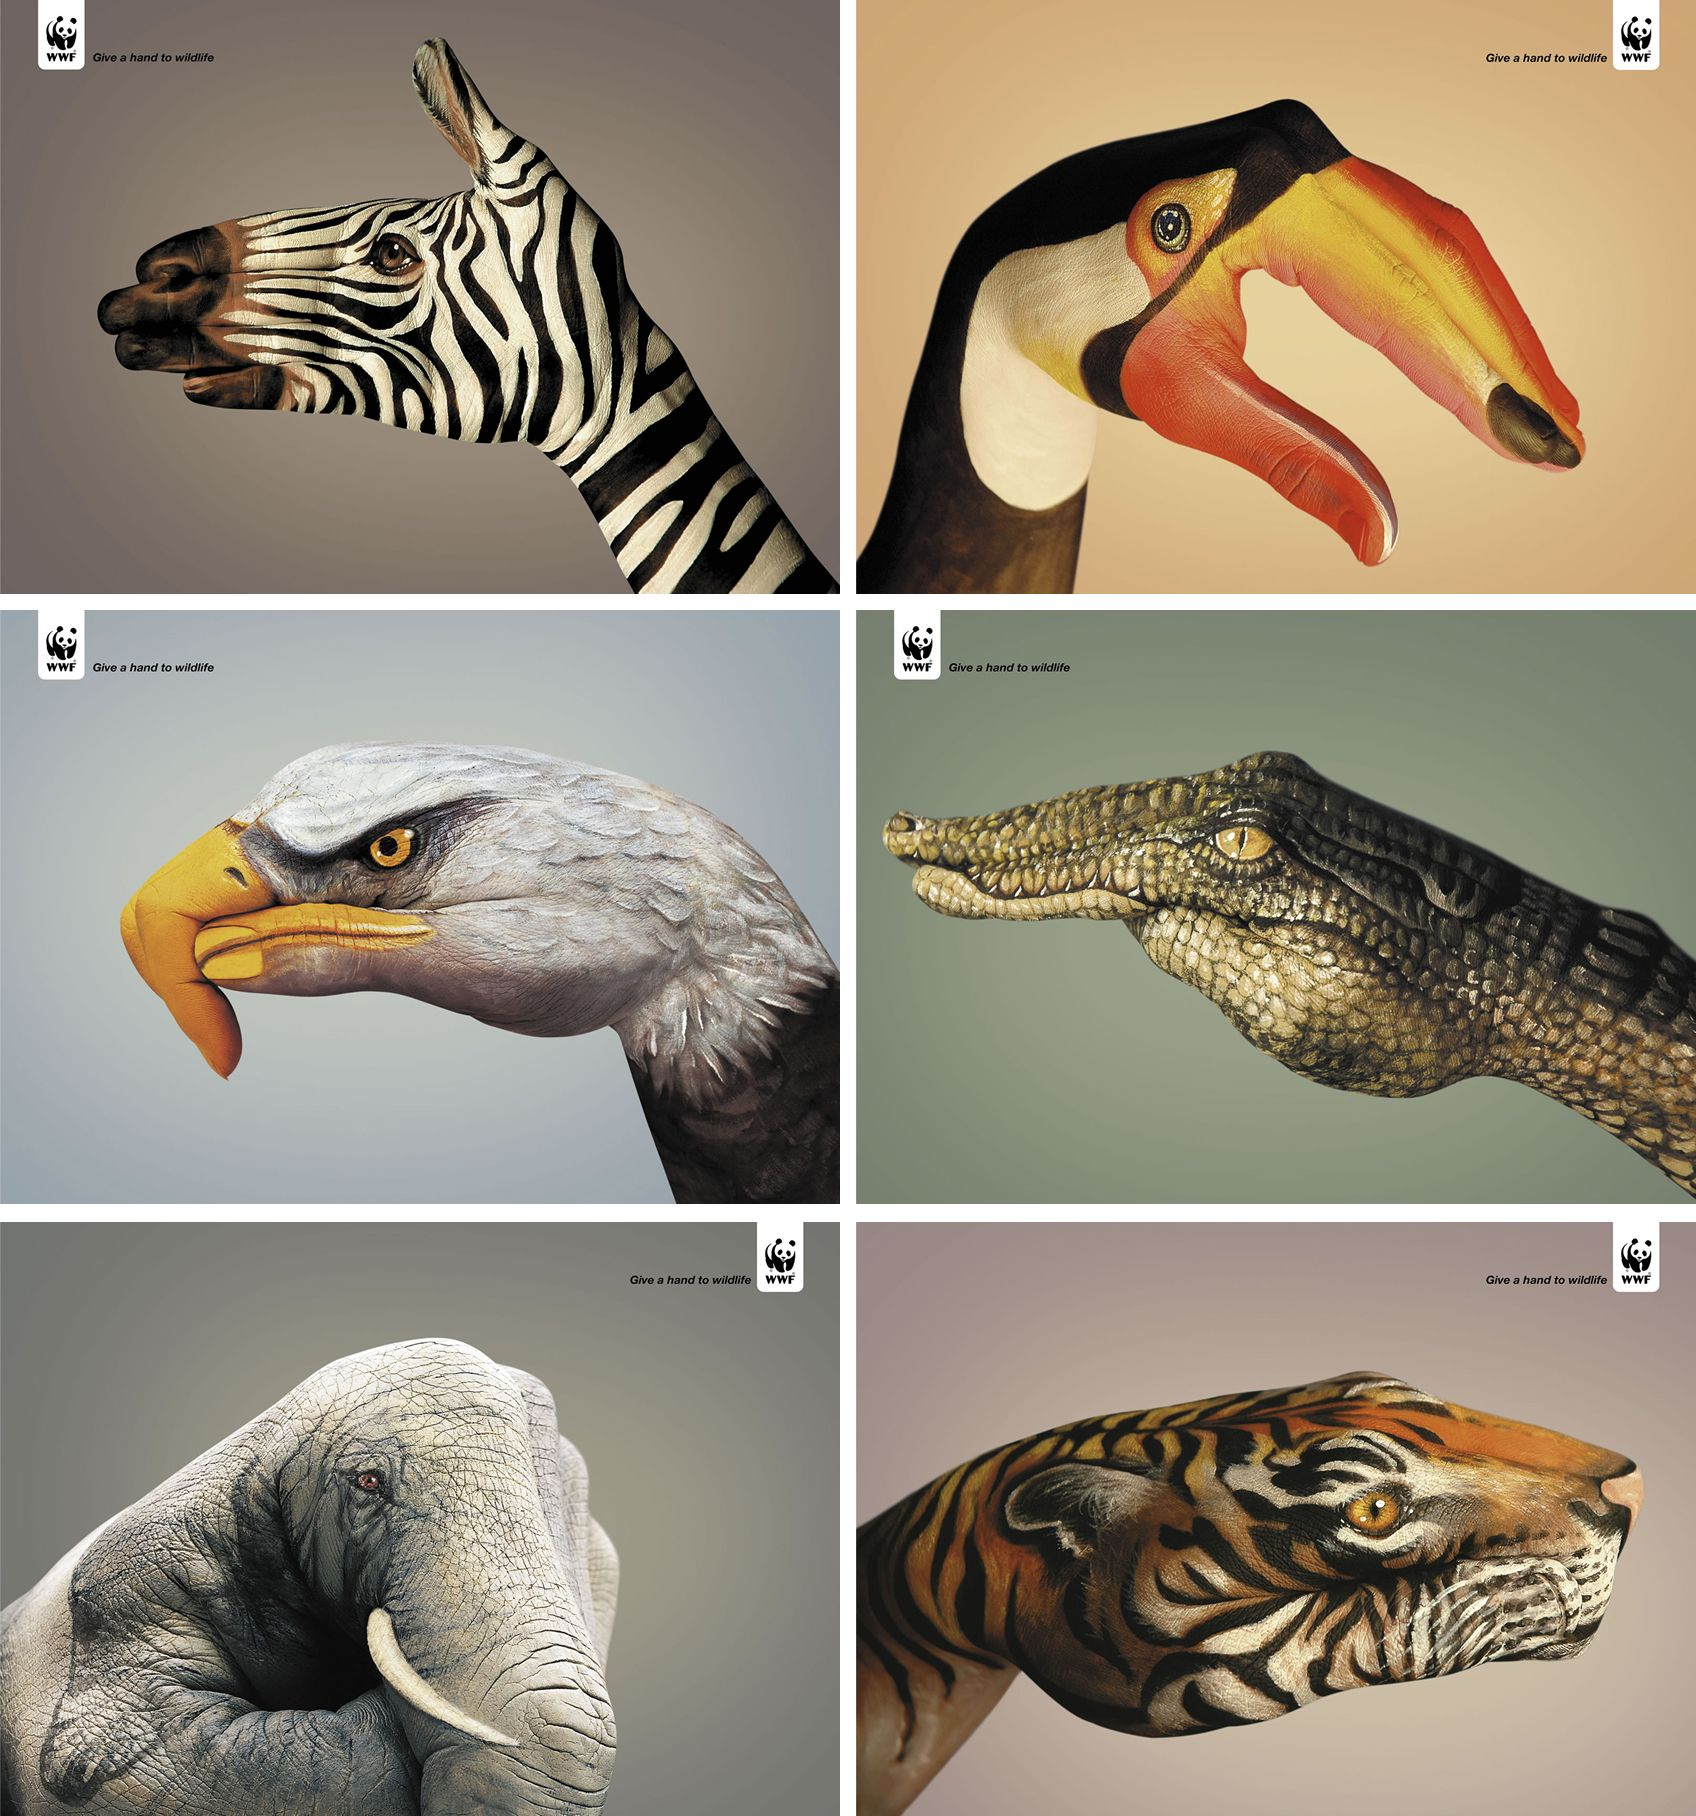 These six print advertisements are made for WWF by well